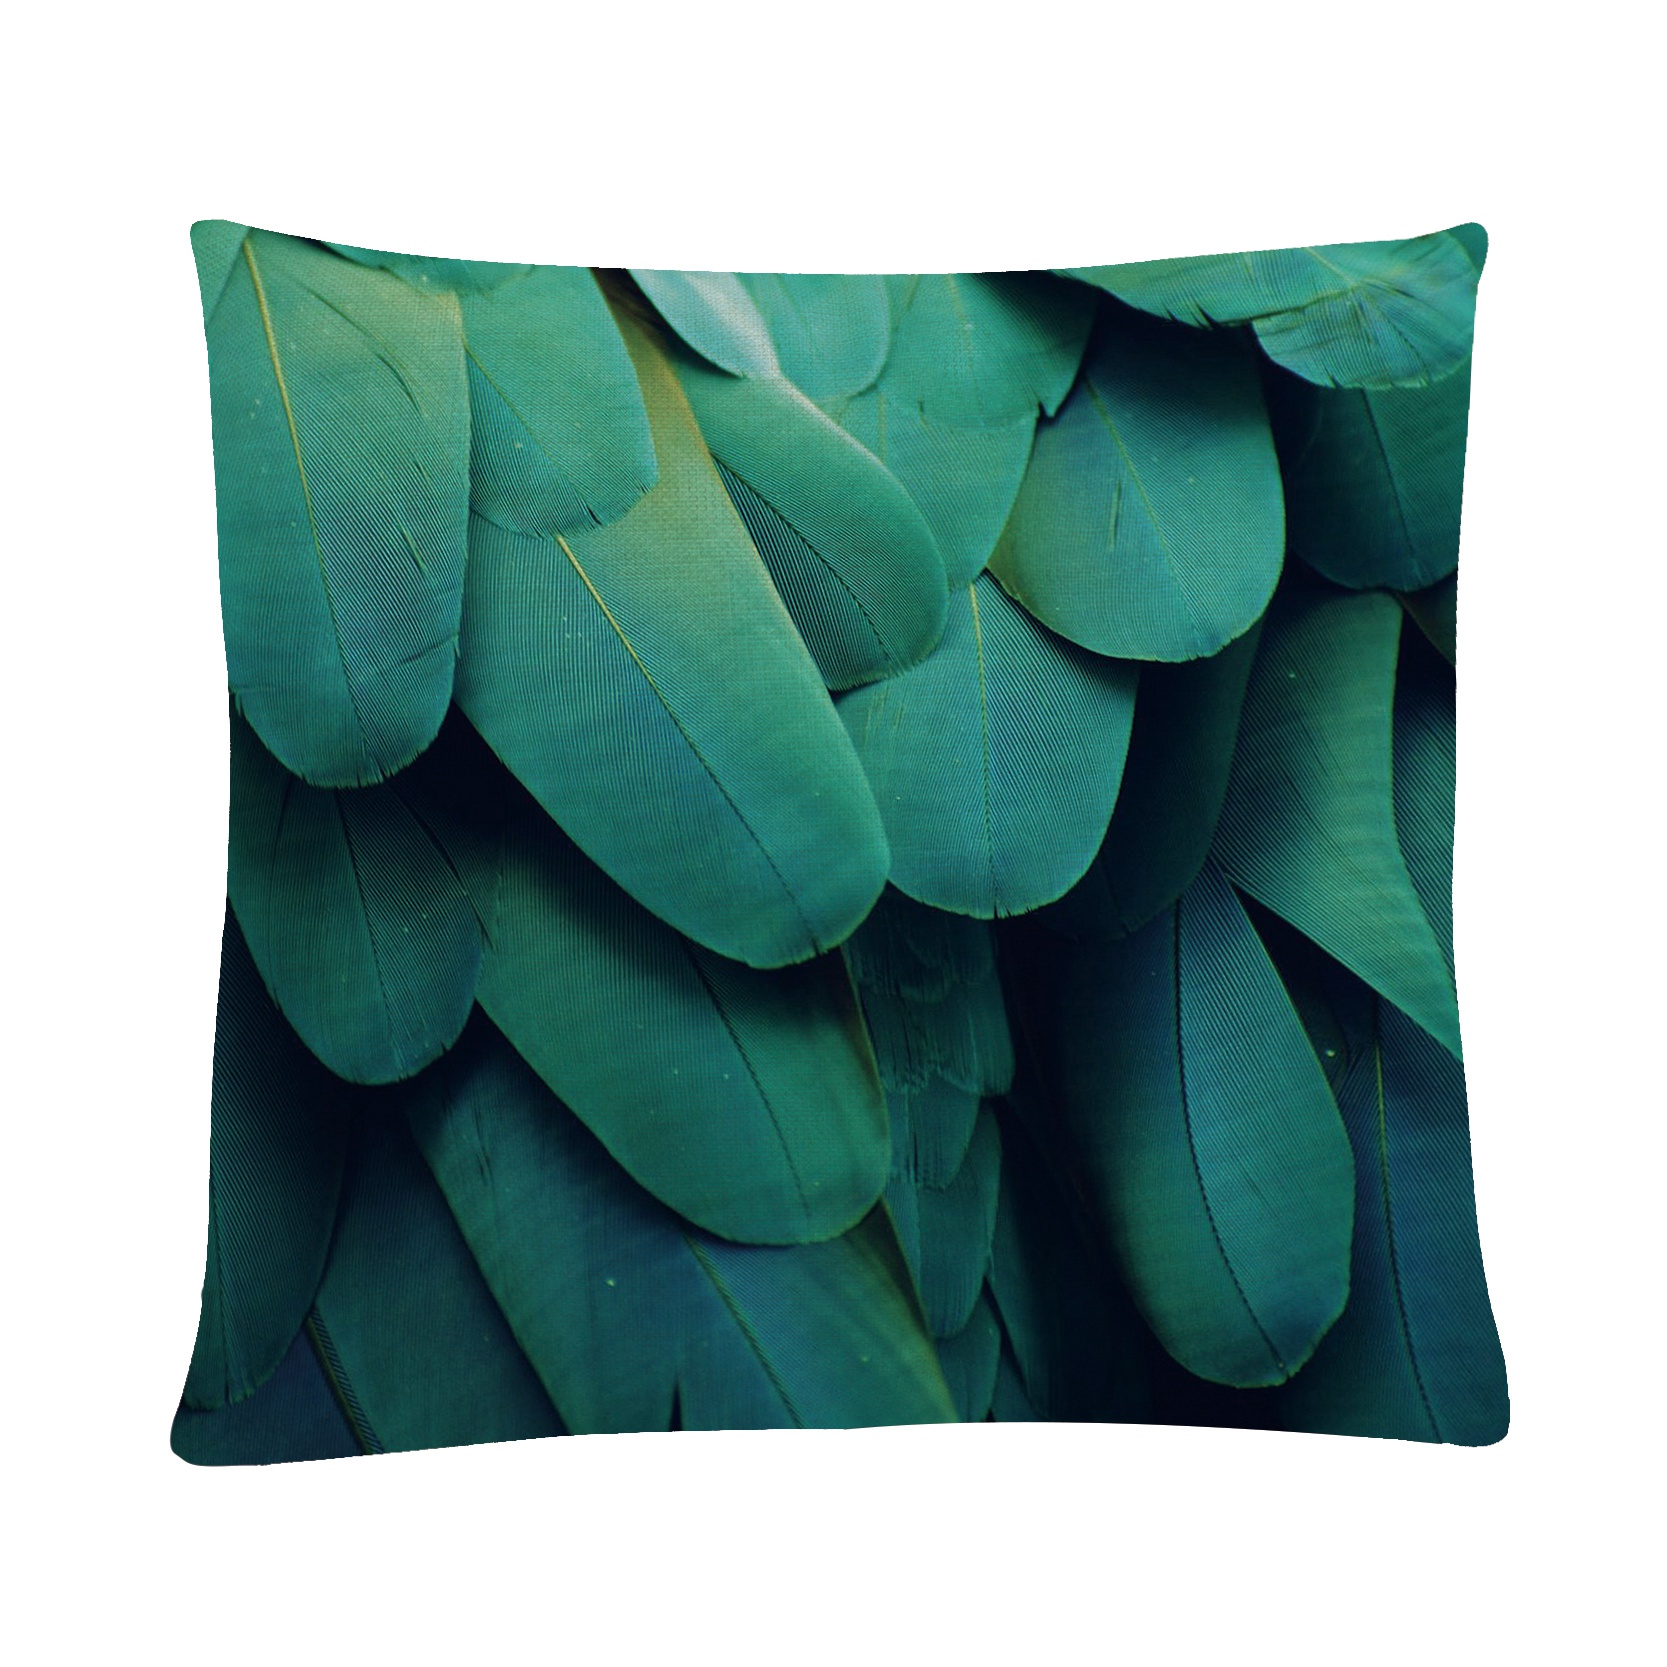 Fashion Cushion Cover Green Feathers Printed Cotton Linen Pillowcase For Sofa Chair Bed Throw Pillow Decoration 45*45cm